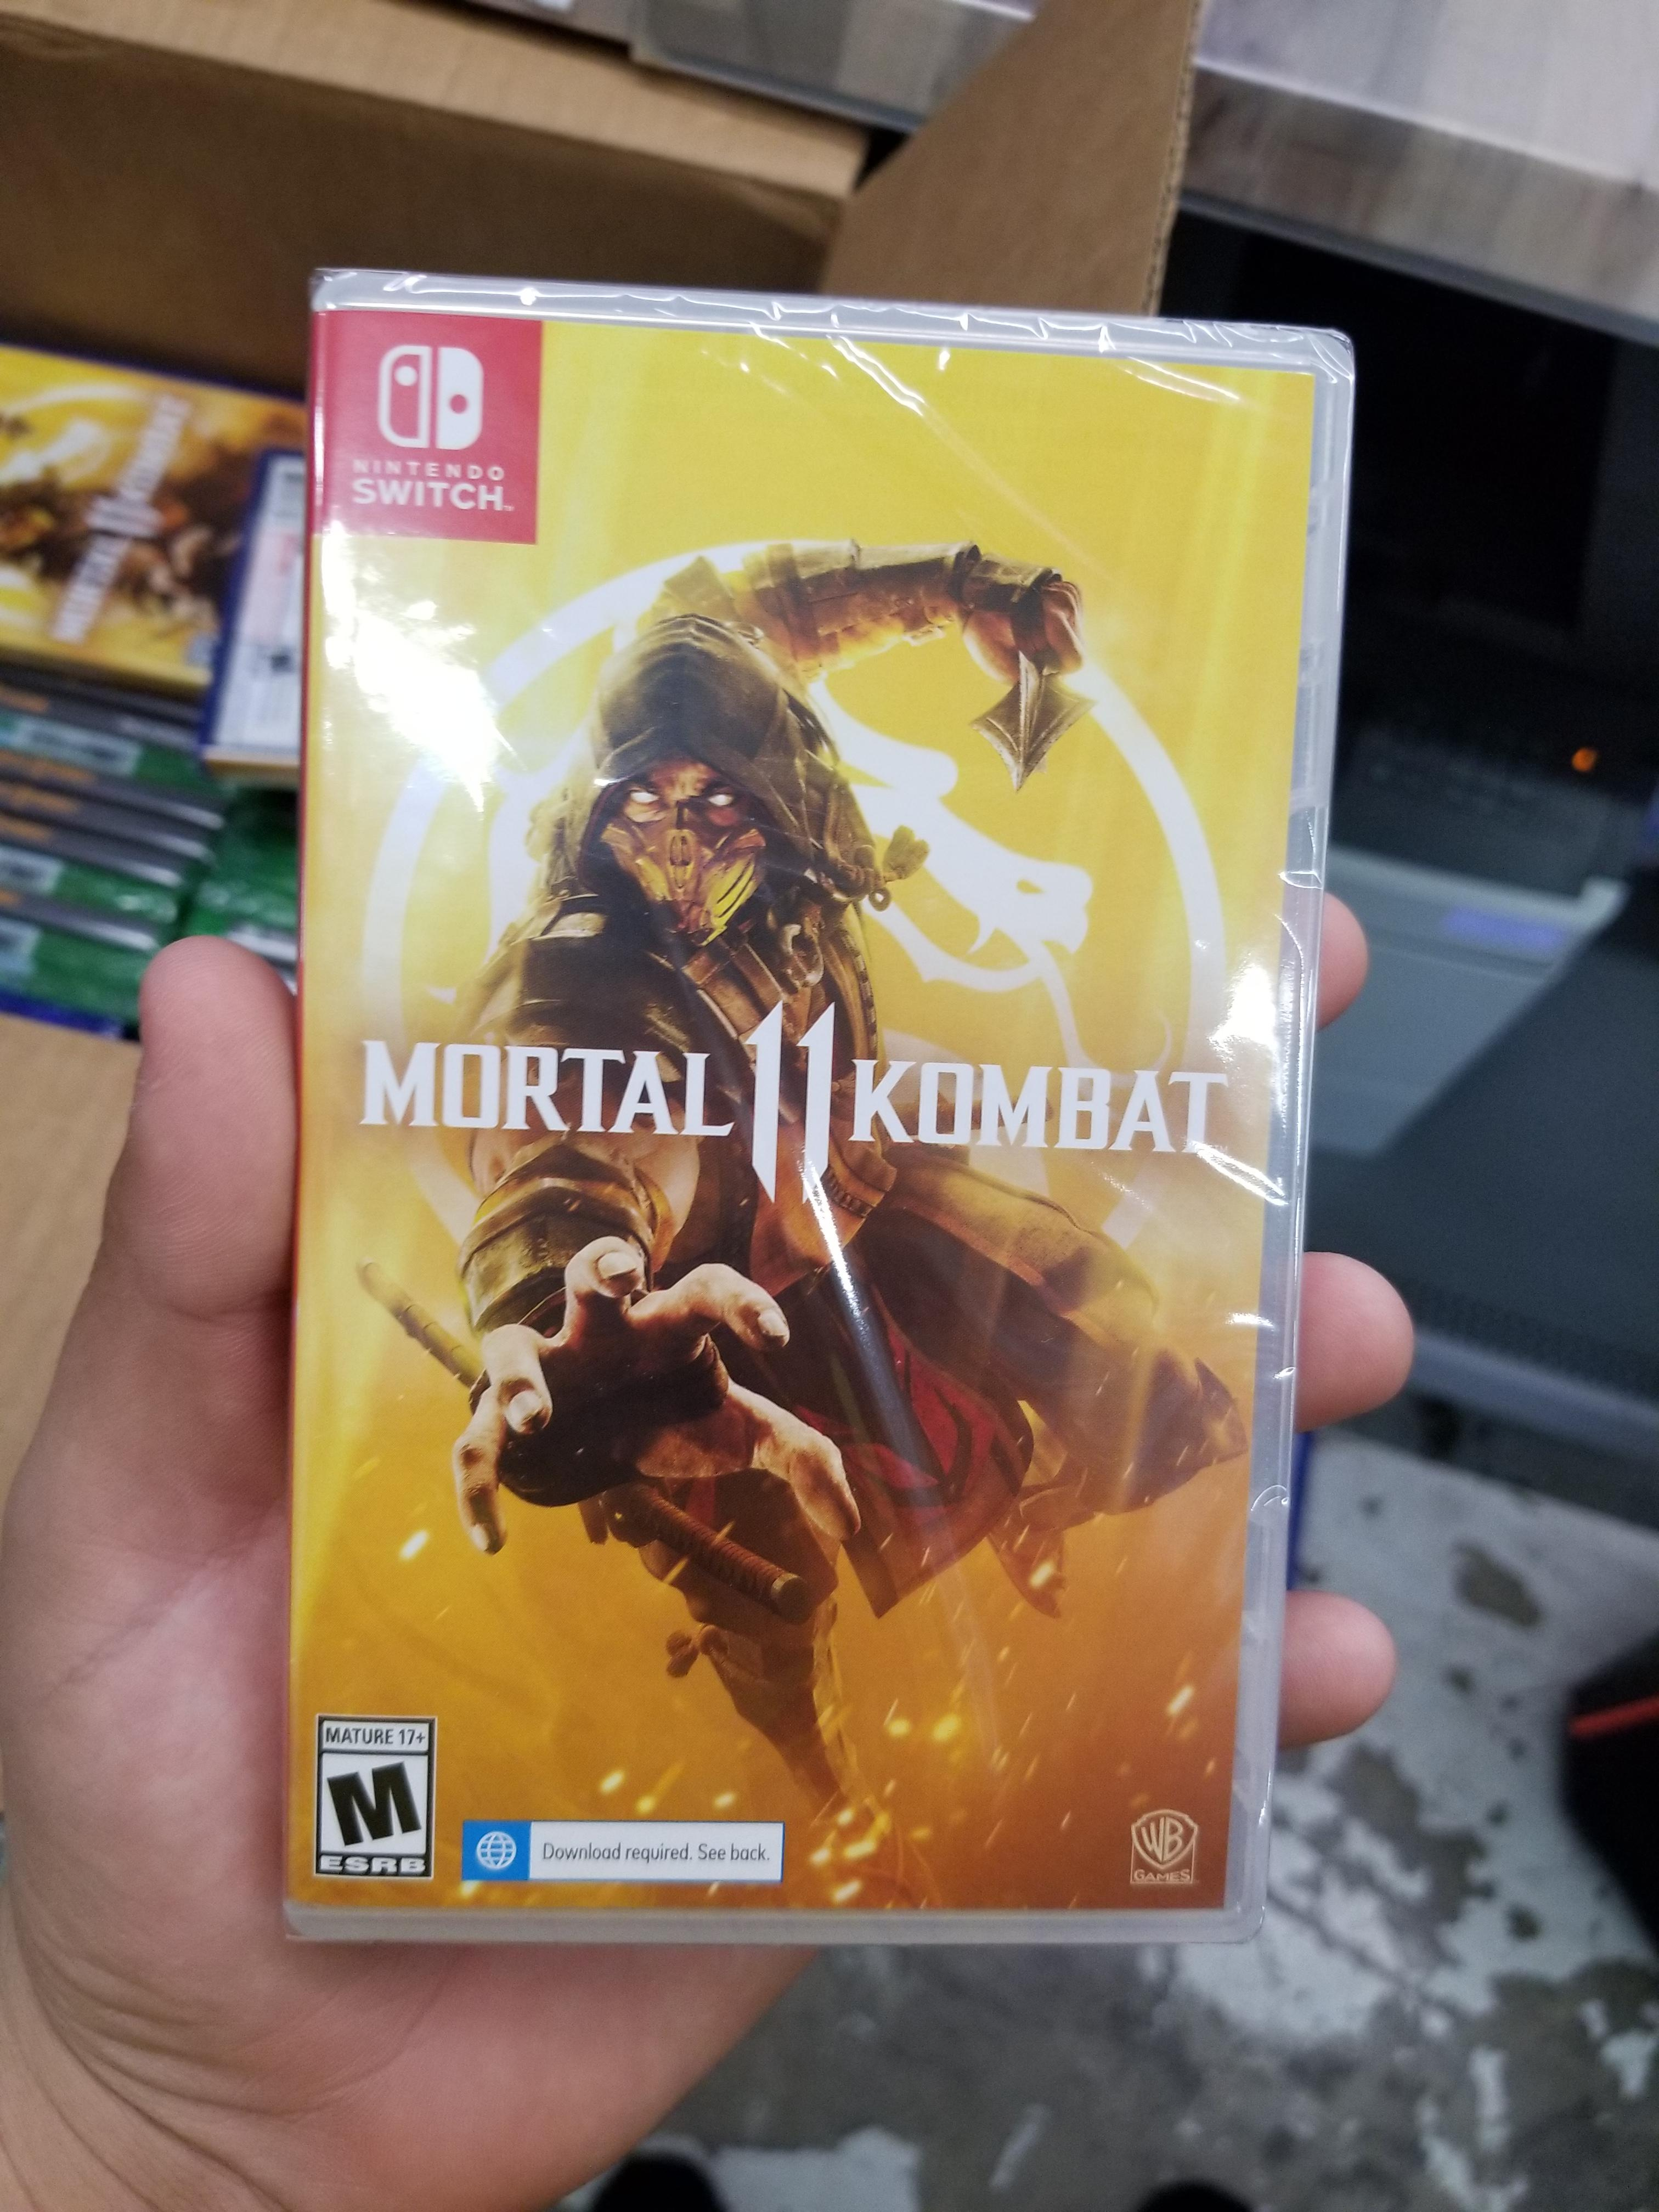 Mortal Kombat 11's physical version has a required download on